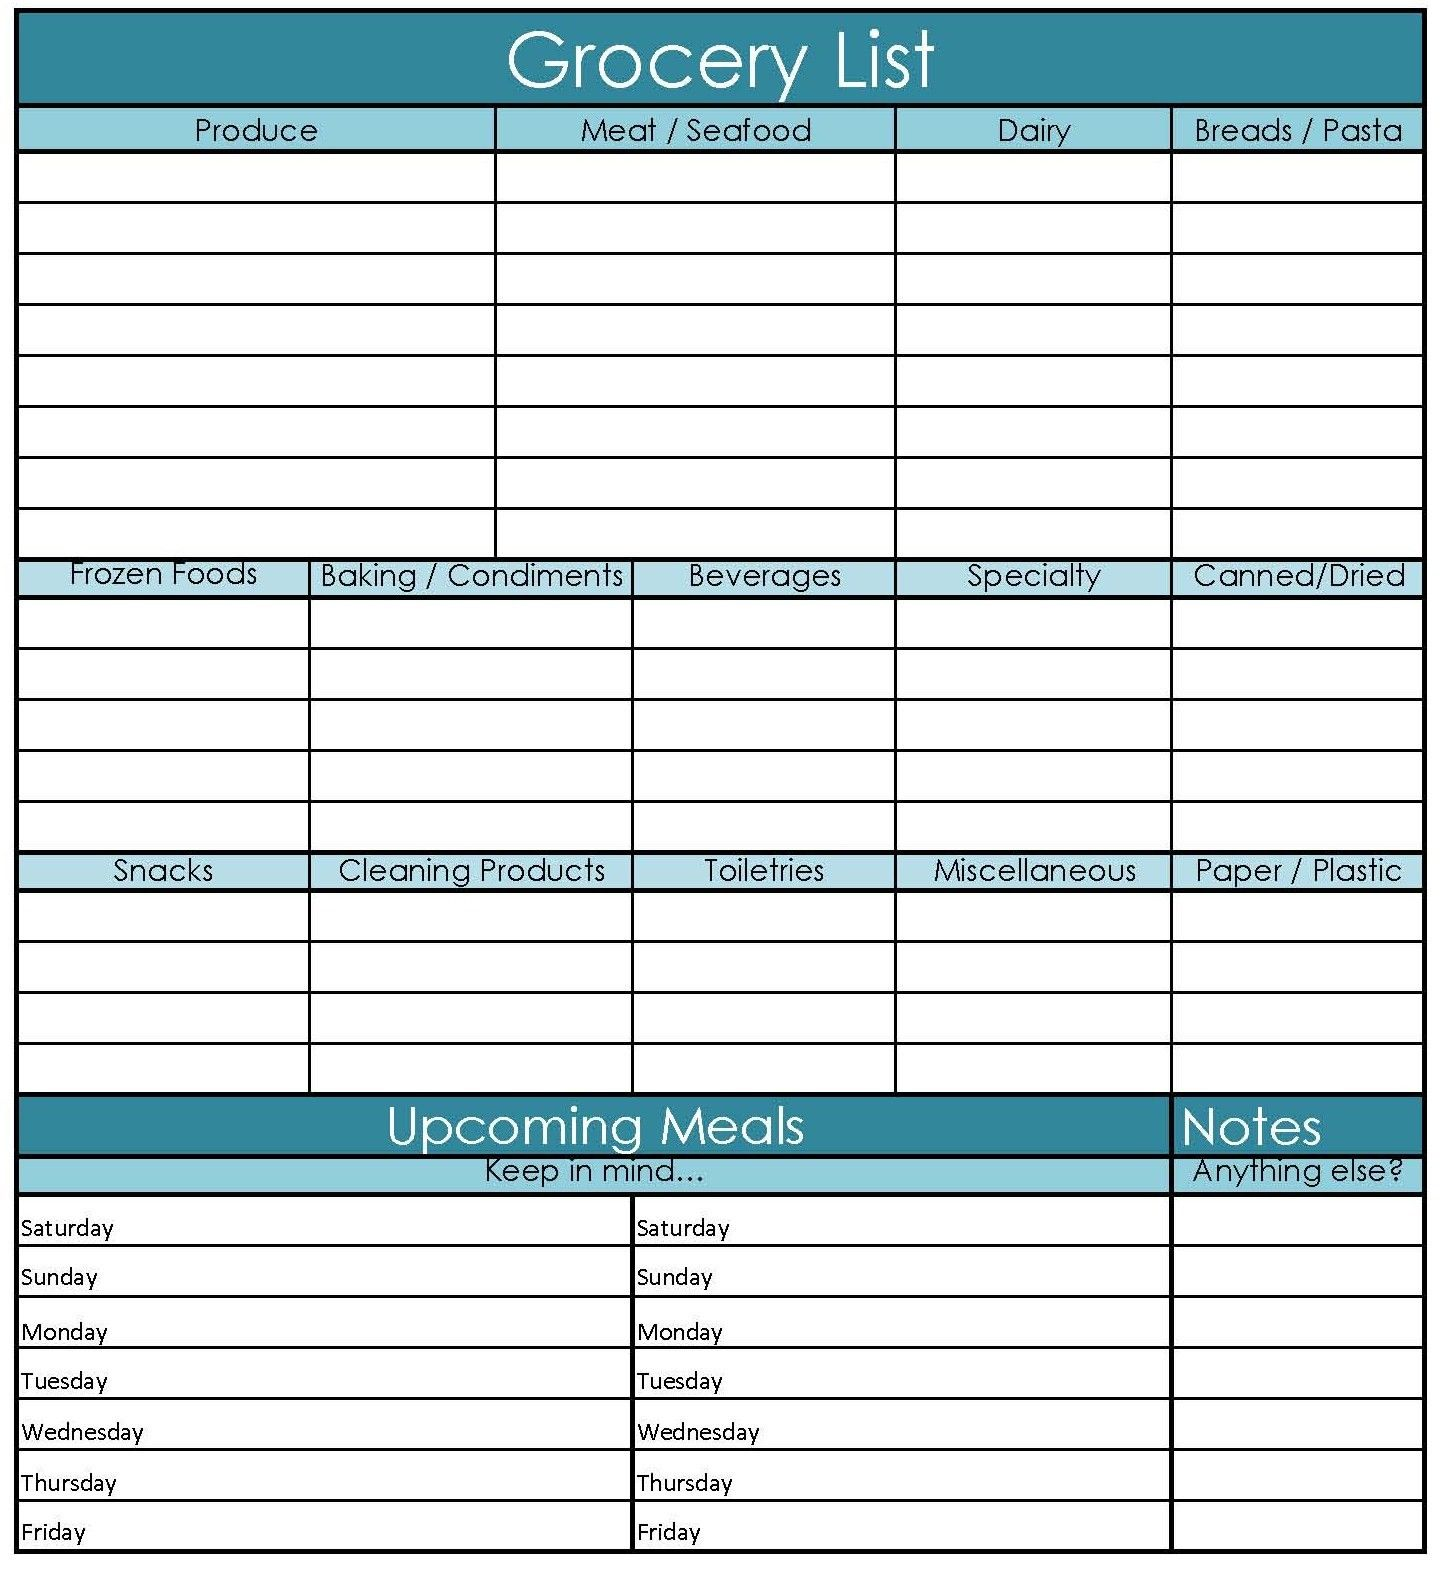 Printable Grocery Shopping List And Meal Planner.  Grocery List Organizer Template